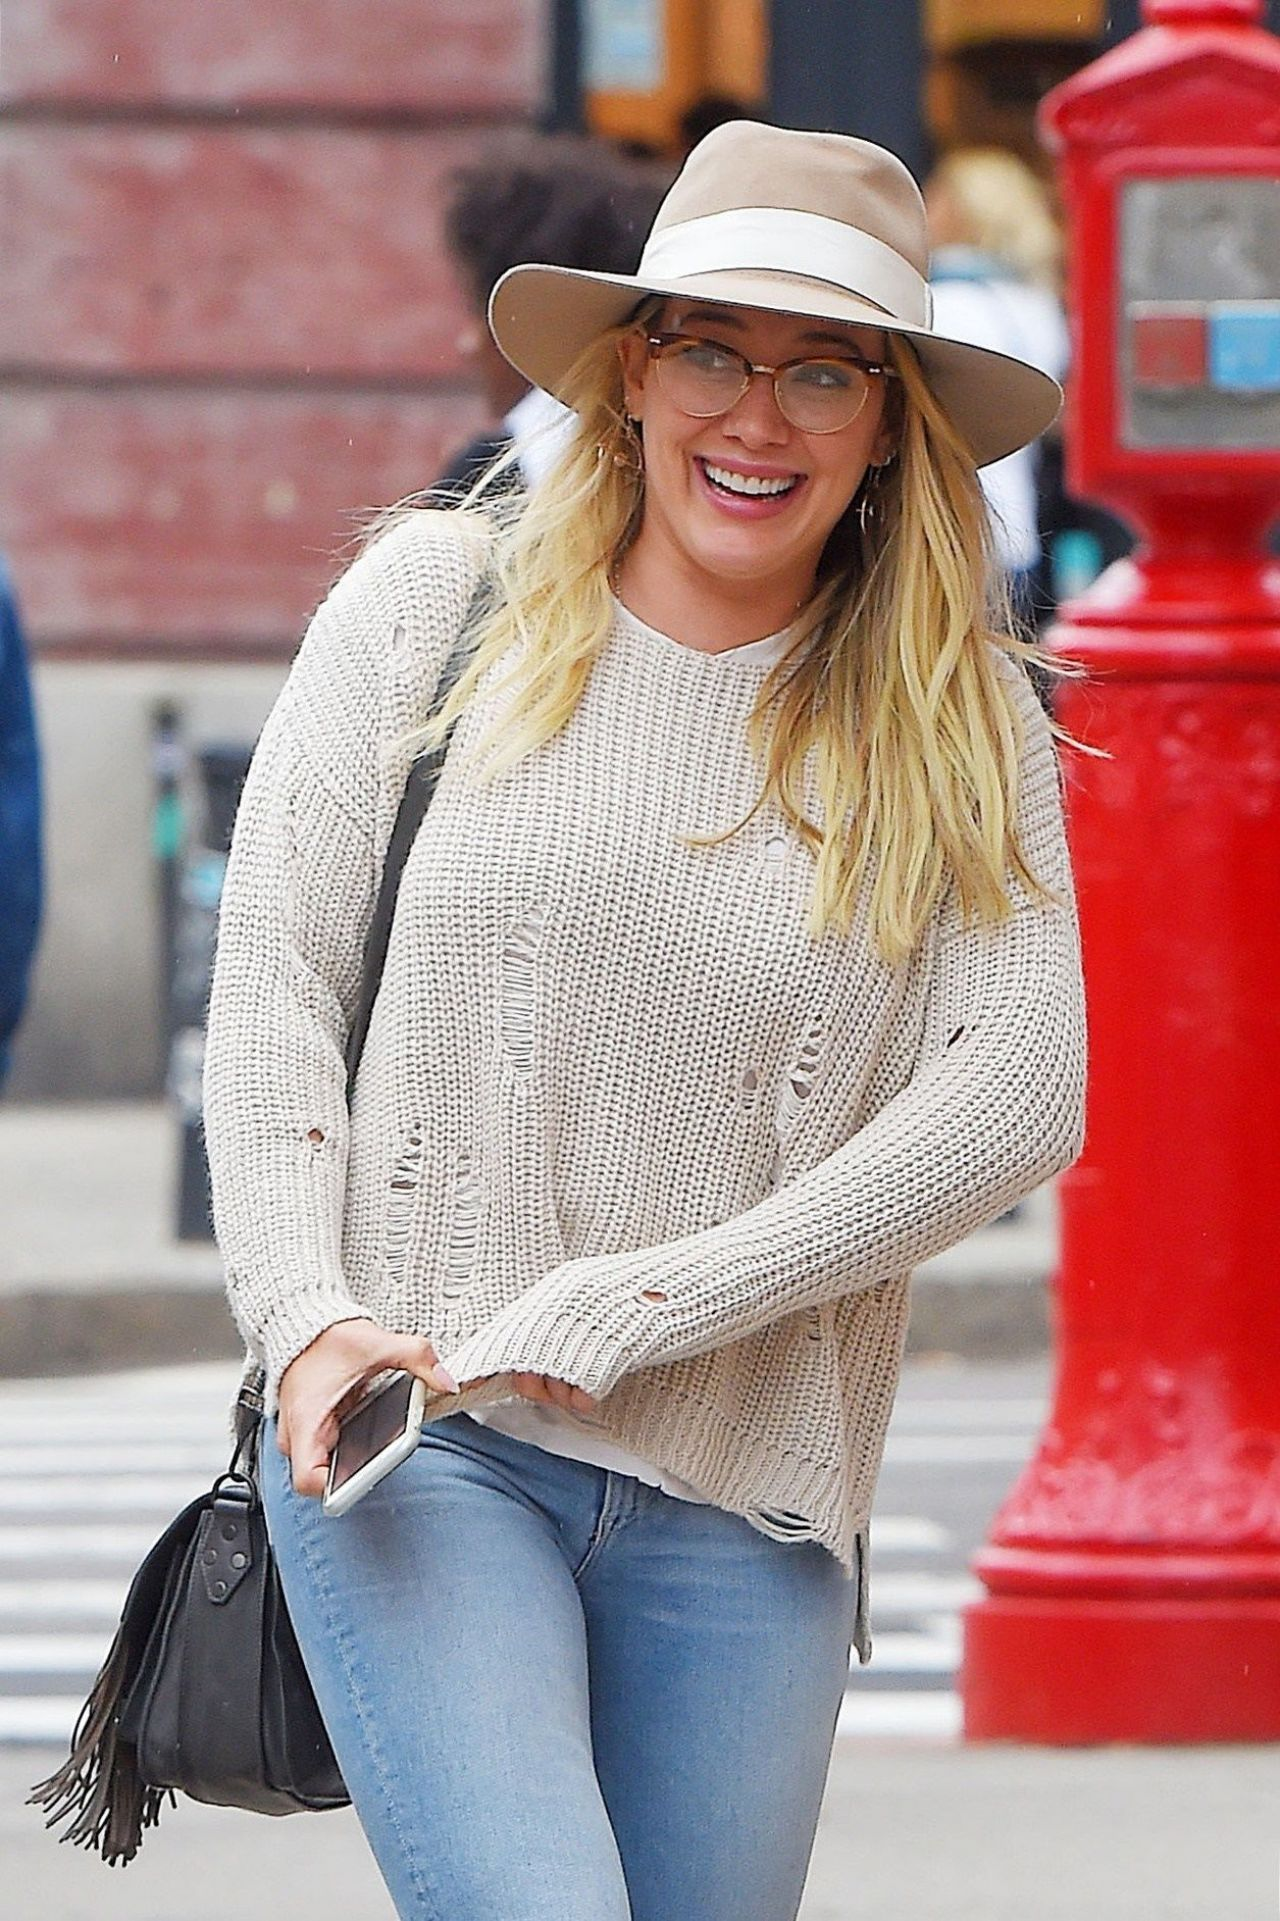 Hilary duff in casual attire grabbing lunch at sadelles in soho nyc nudes (94 photo), Bikini Celebrity pics